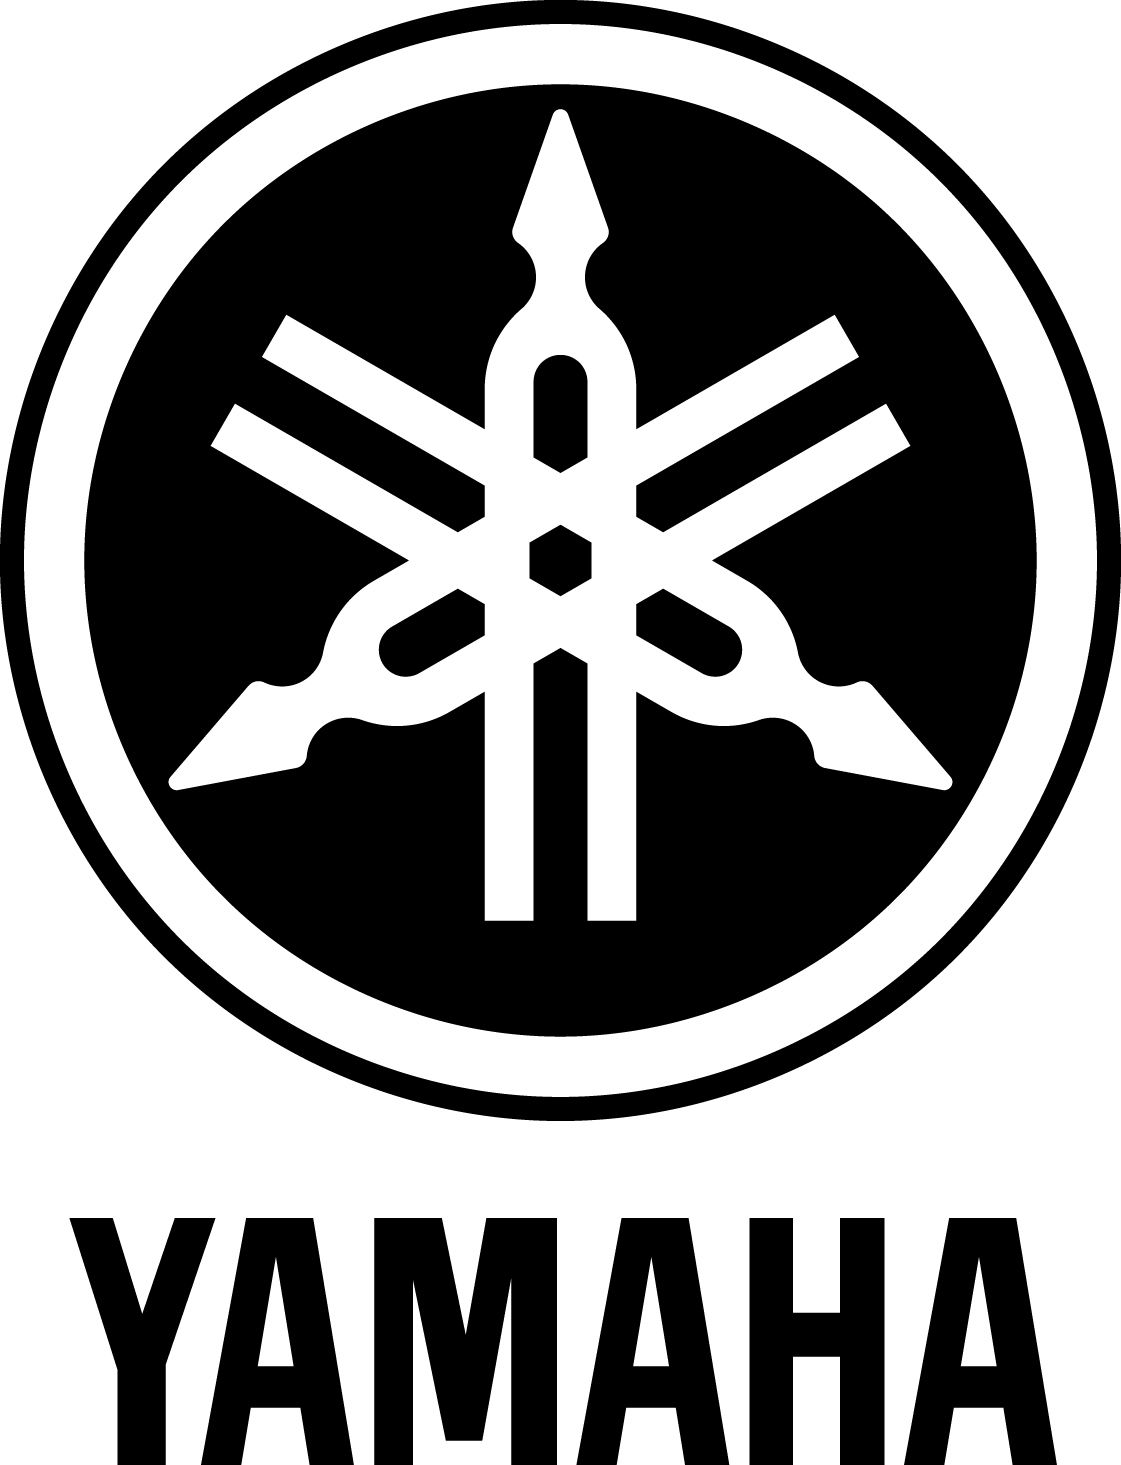 Yamaha Logo Branded Logos Pinterest Tuning Fork Logos And